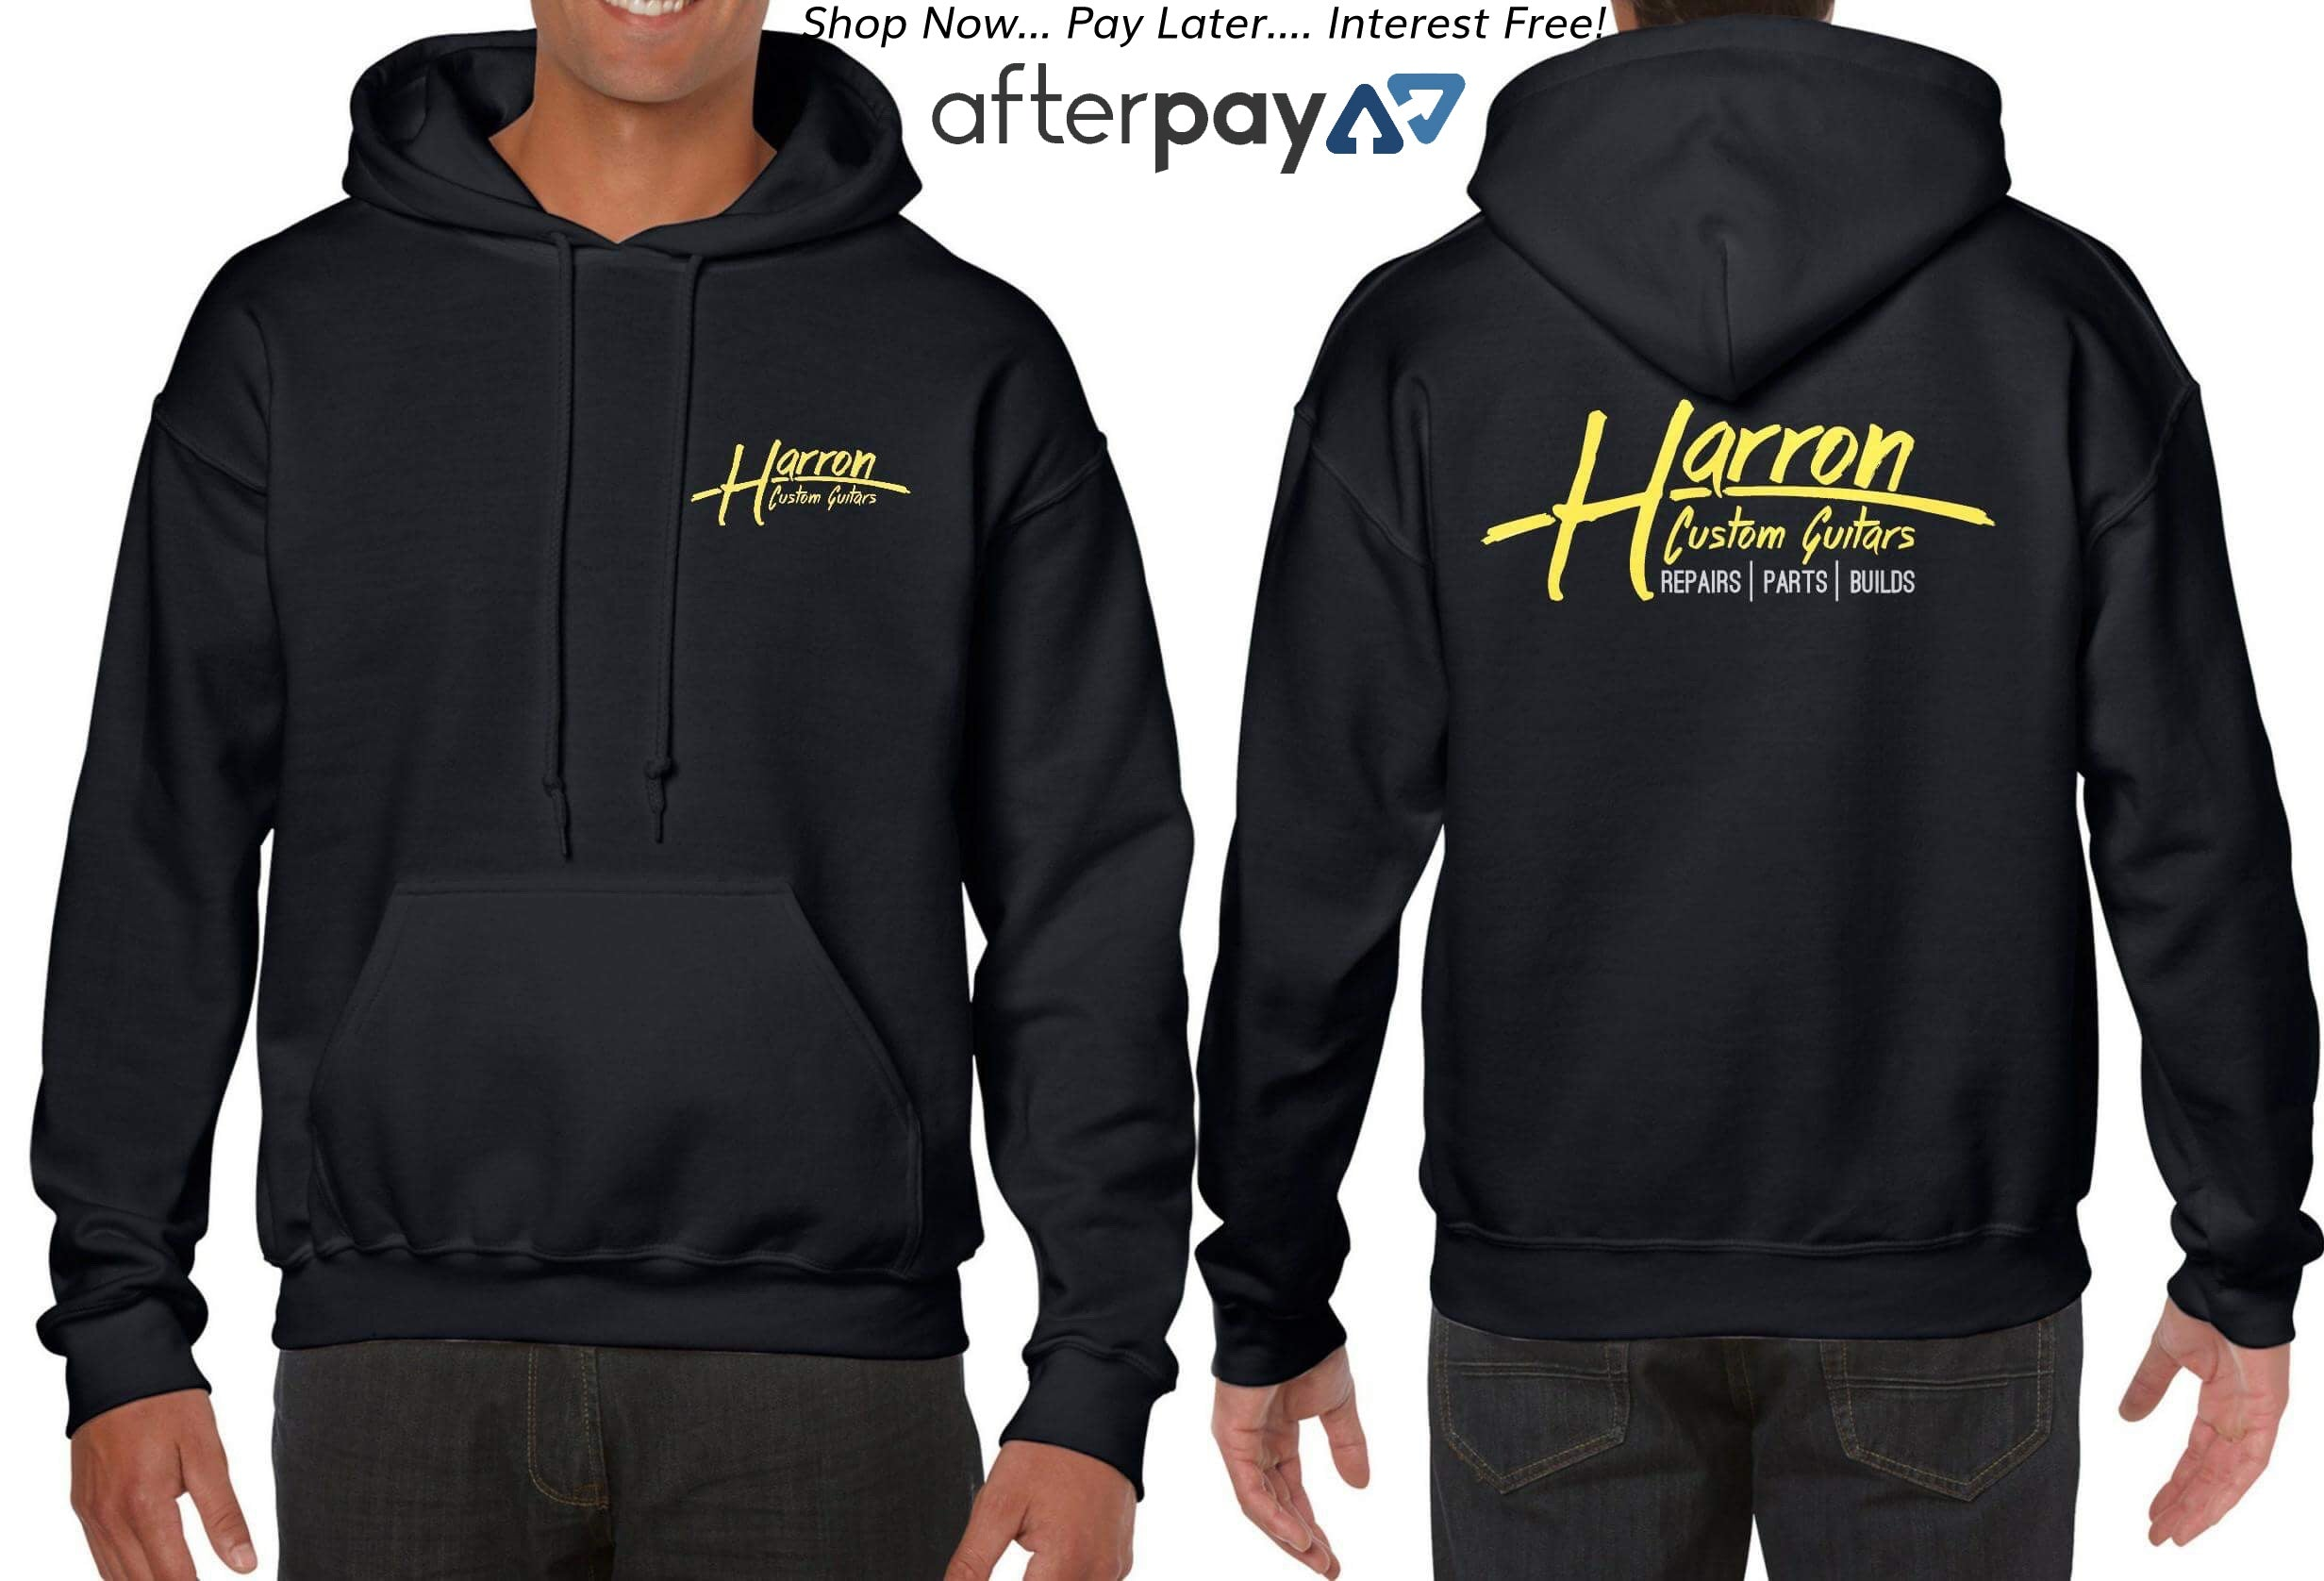 HCG STENCIL Hoodie (Printed on ASColour) *SOLD OUT/Contact Us*